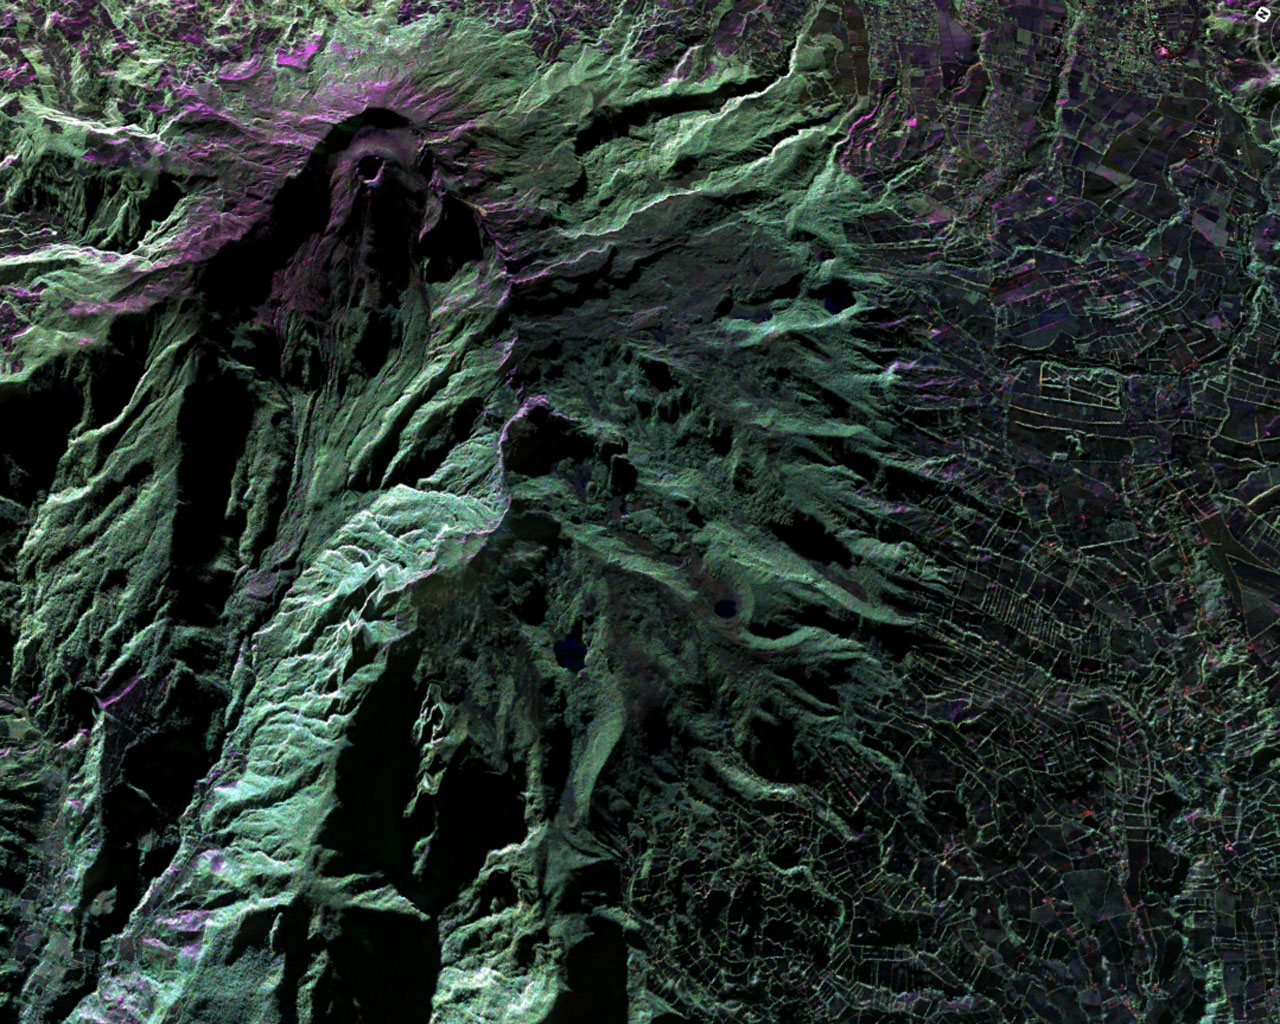 This false-color image of Colombia's Galeras Volcano, was acquired by UAVSAR on March 13, 2013. A highly active volcano, Galeras features a breached caldera and an active cone that produces numerous small to moderate explosive eruptions.